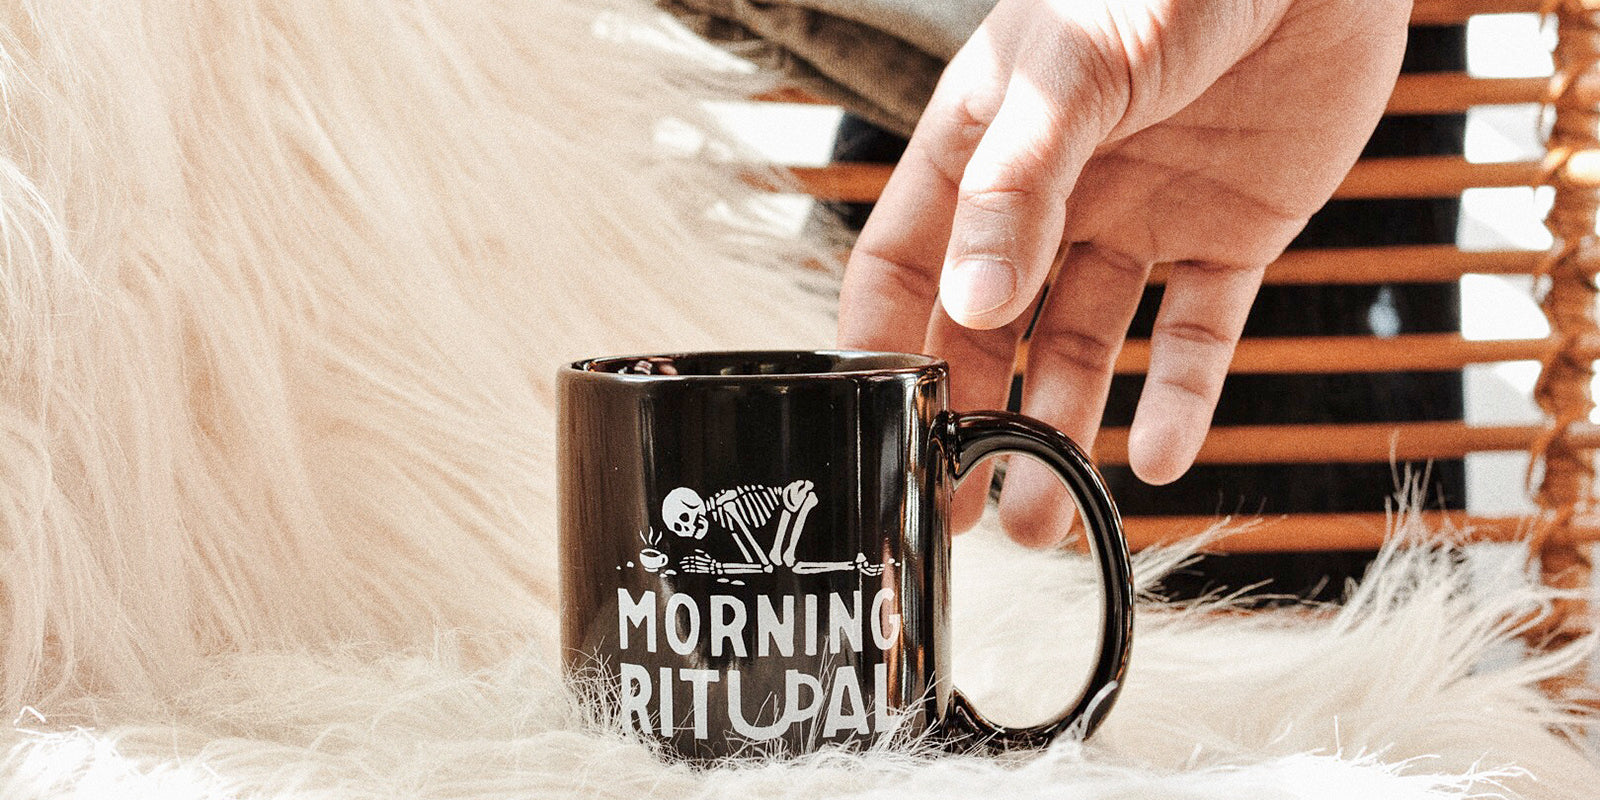 Morning Ritual Skeleton Bones Need Coffee Ceramic Mug